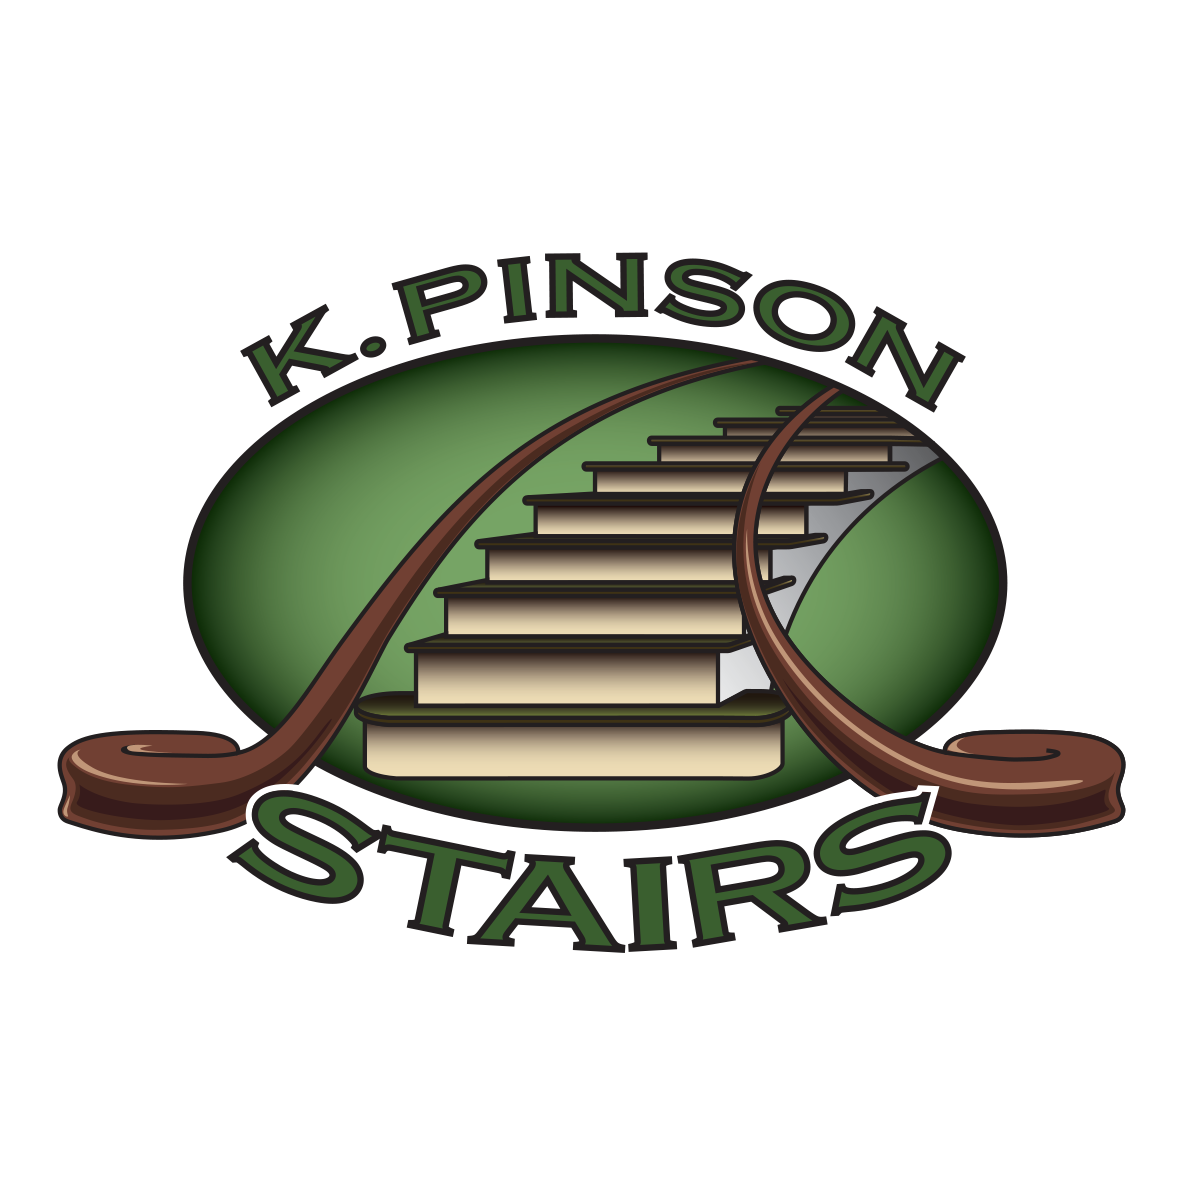 K. Pinson Stairs